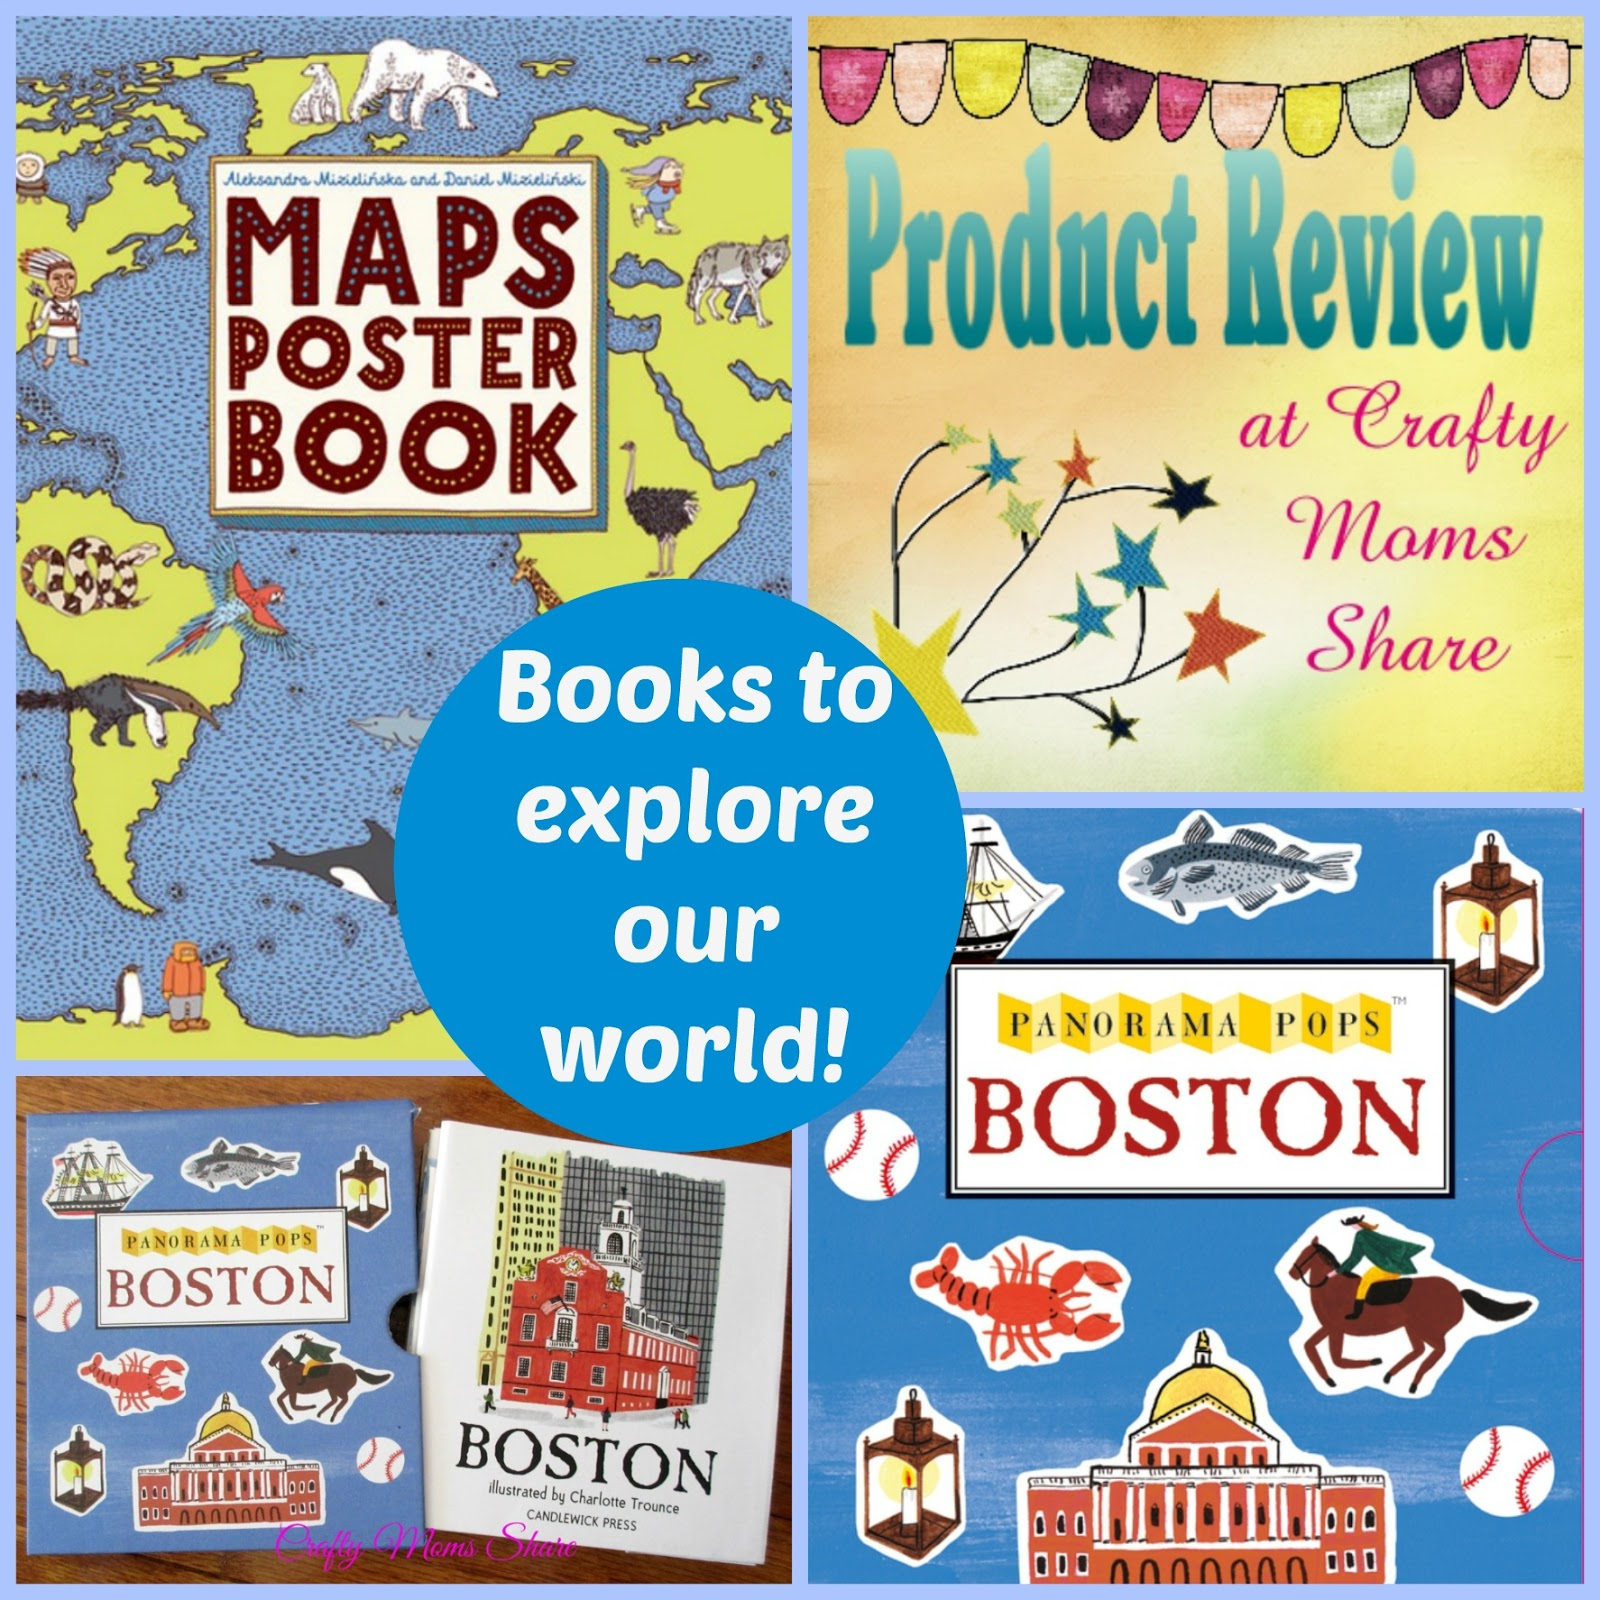 Crafty moms share books to explore our world maps poster book books to explore our world maps poster book and panorama pops boston book reviews gumiabroncs Image collections